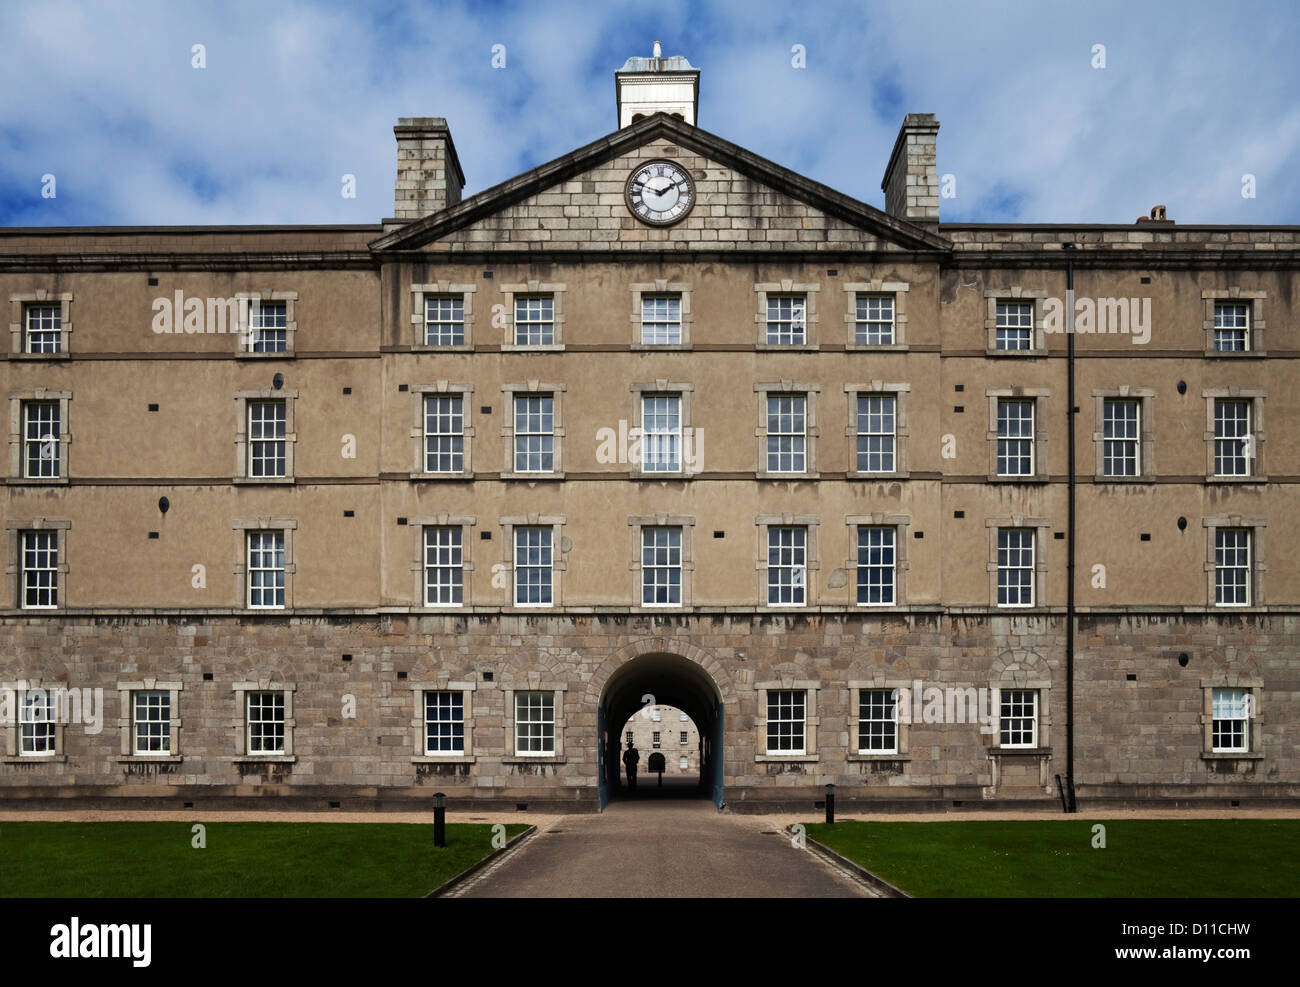 National Museum of Ireland, The Collins (former British Royal Barracks) Barracks completed in 1704, Arbour Hill, - Stock Image